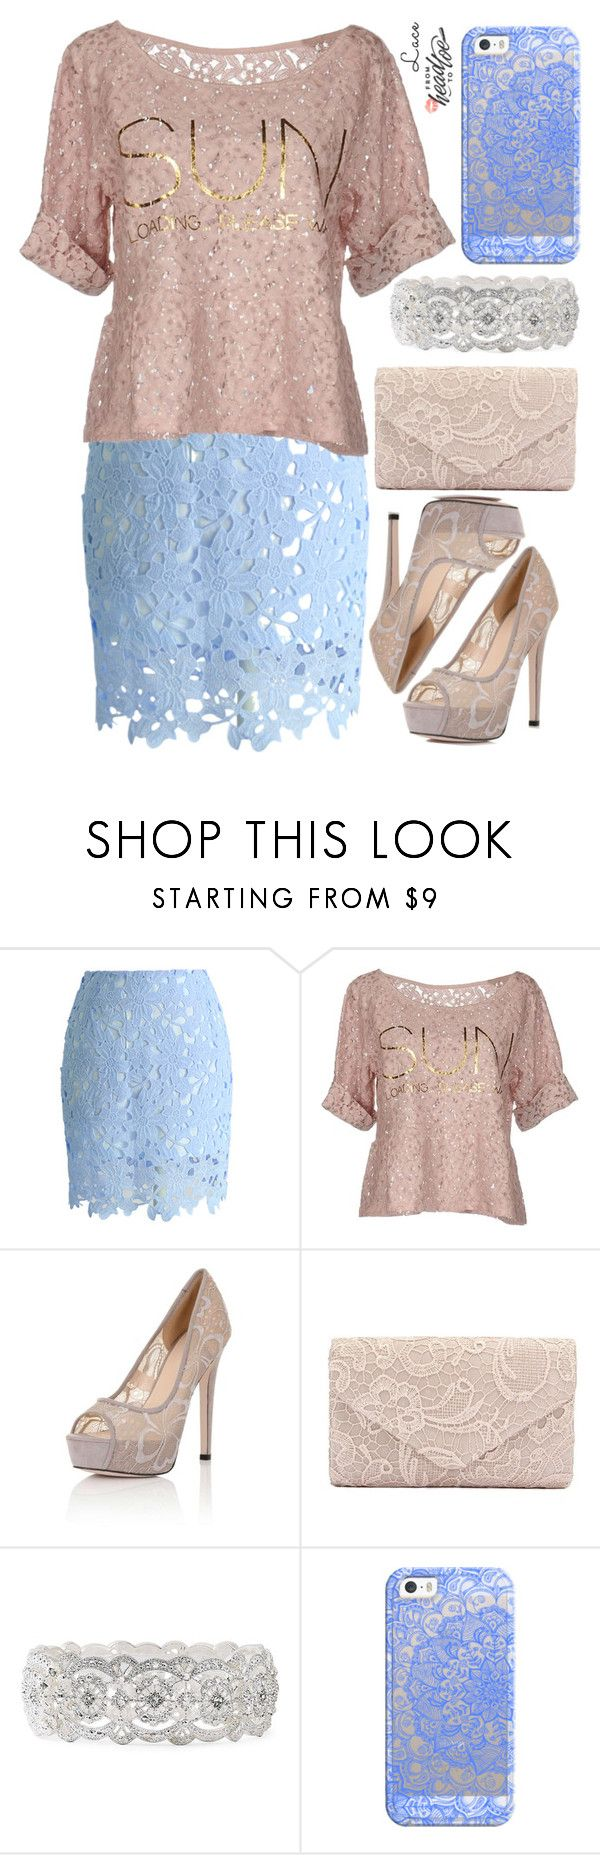 """Over 2200 Members In The Group: Pretty Pastels"" by deedee-pekarik ❤ liked on Polyvore featuring Chicwish, Au Soleil de Saint Tropez, Little Mistress, Vieste Rosa and Casetify"